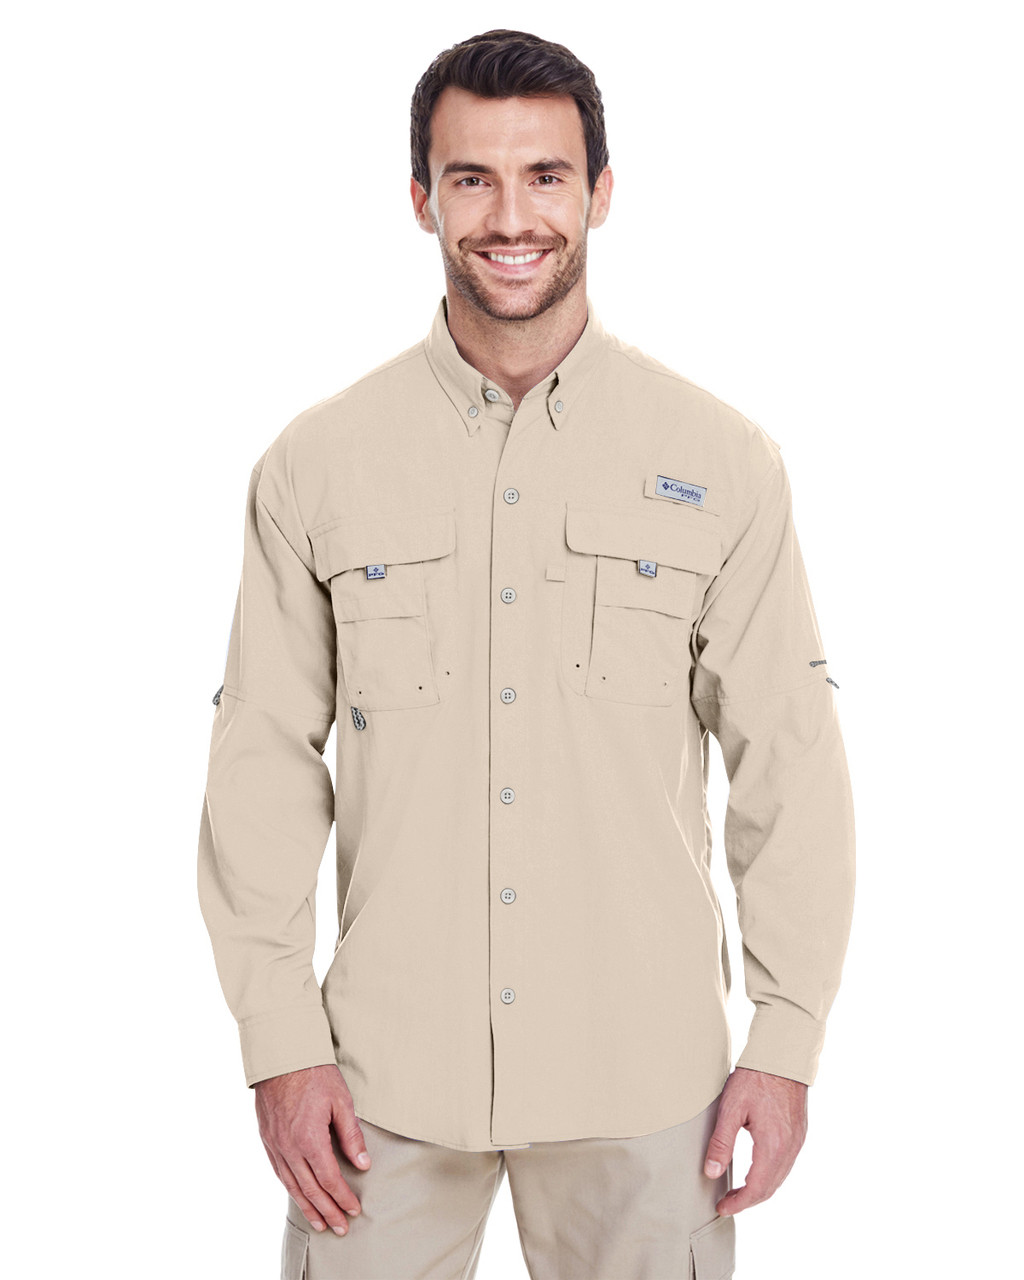 Fossil -  7048 Columbia Men's Bahama™ II Long-Sleeve Shirt | BlankCLothing.ca